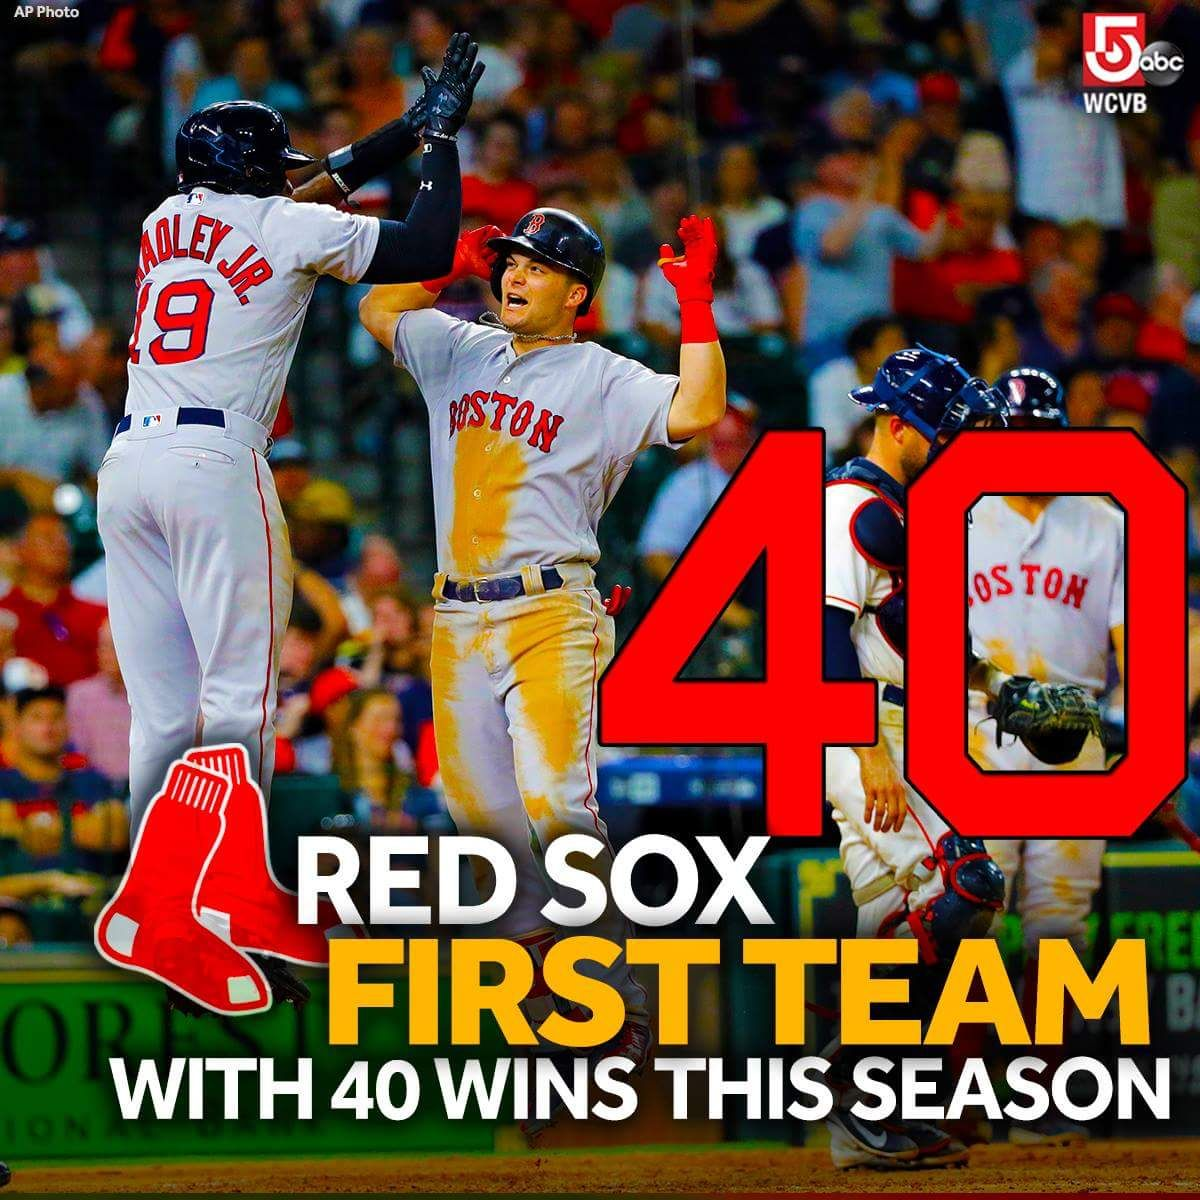 34482981 10156516399439445 5555554924818857984 O Jpg 1200 1200 One Team Red Sox Nation Red Sox